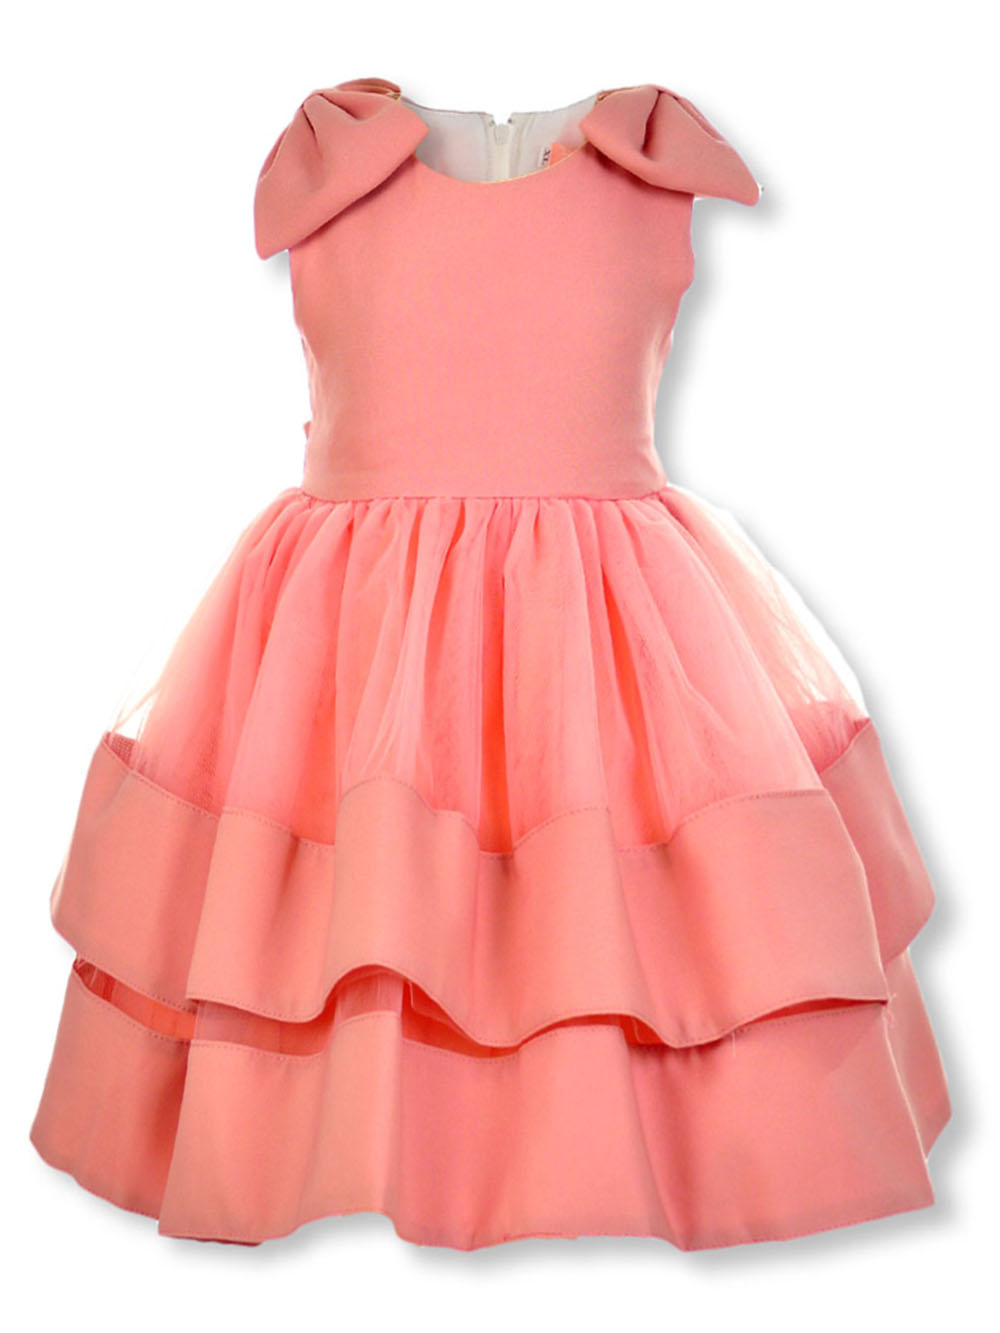 Girls' Tiered Skirt Dress